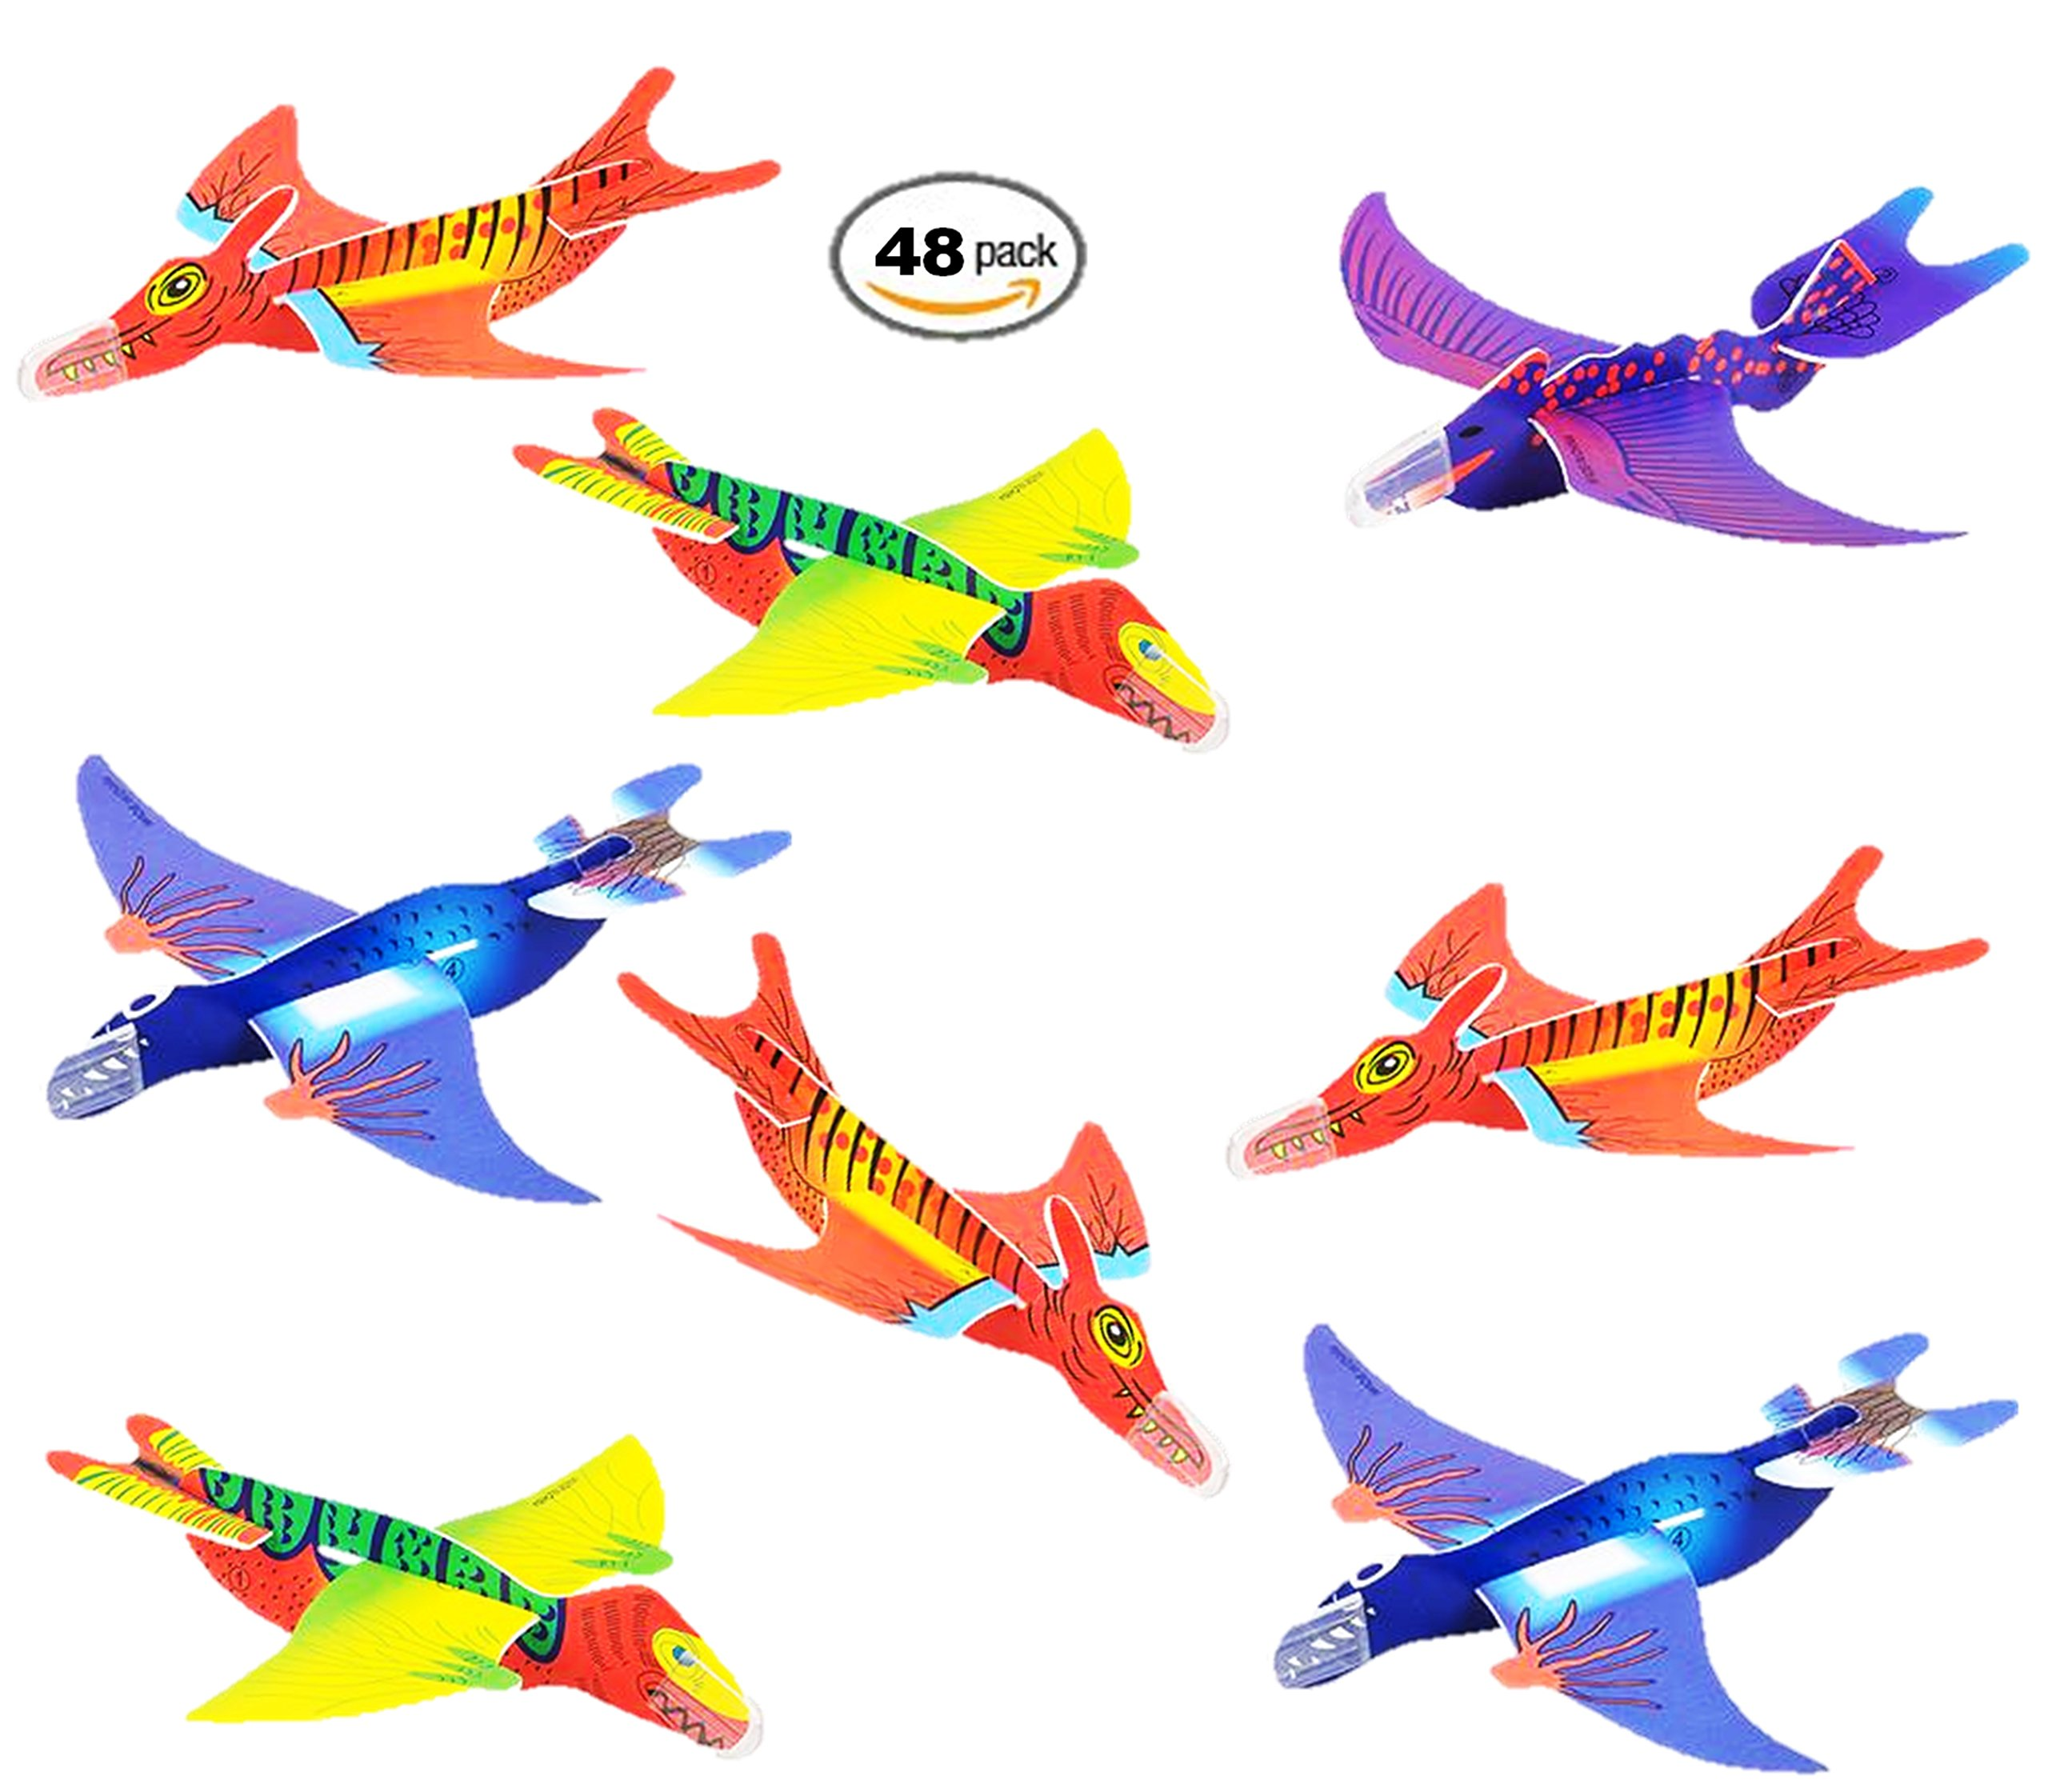 Play Kreative 48 PK Flying Dinosaur Glider Planes - Kids party favors for Dinosaur Party Events